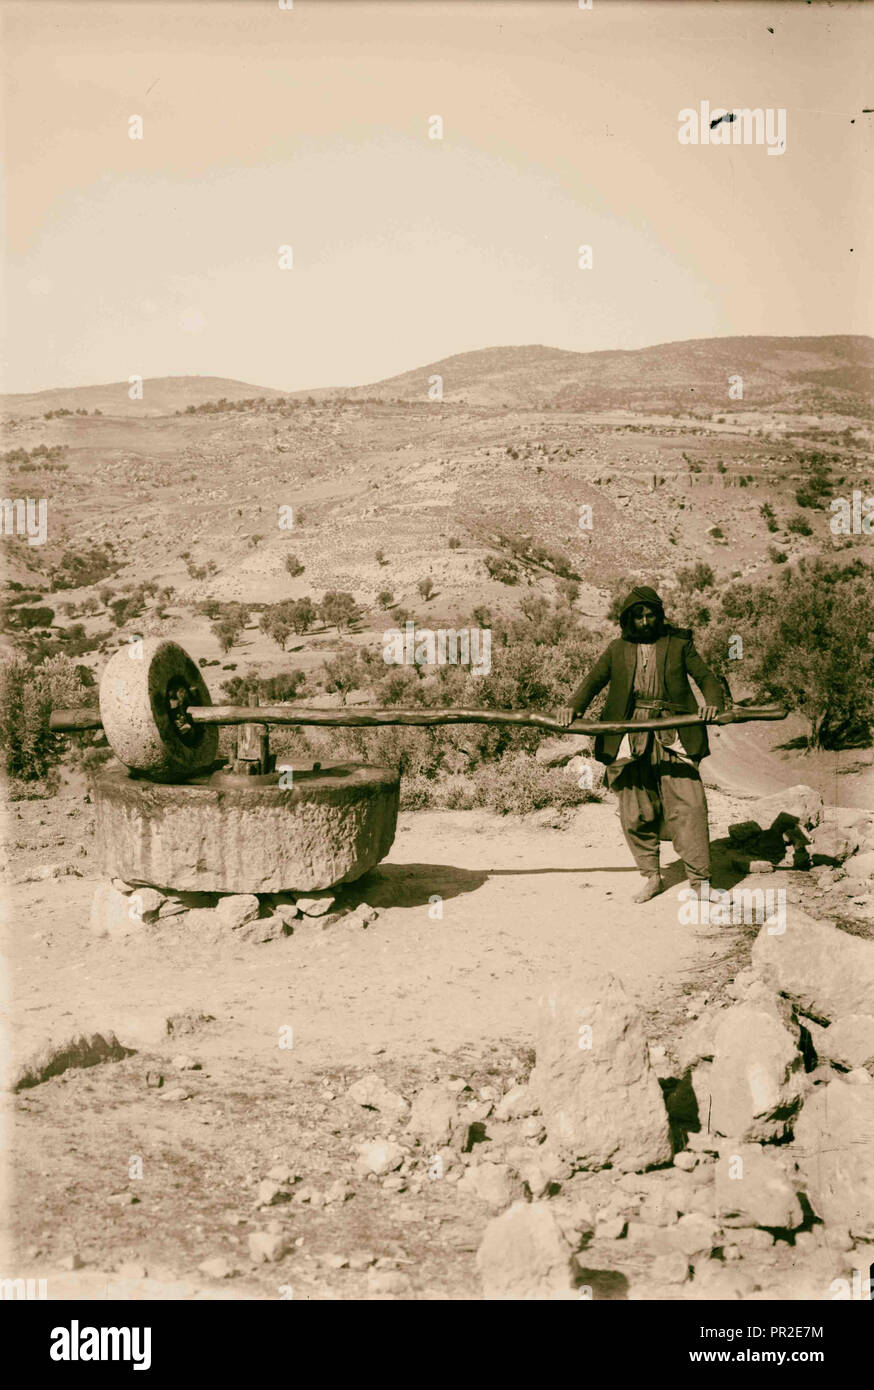 Primitive olive crusher. 1900, Middle East, Israel and/or Palestine - Stock Image